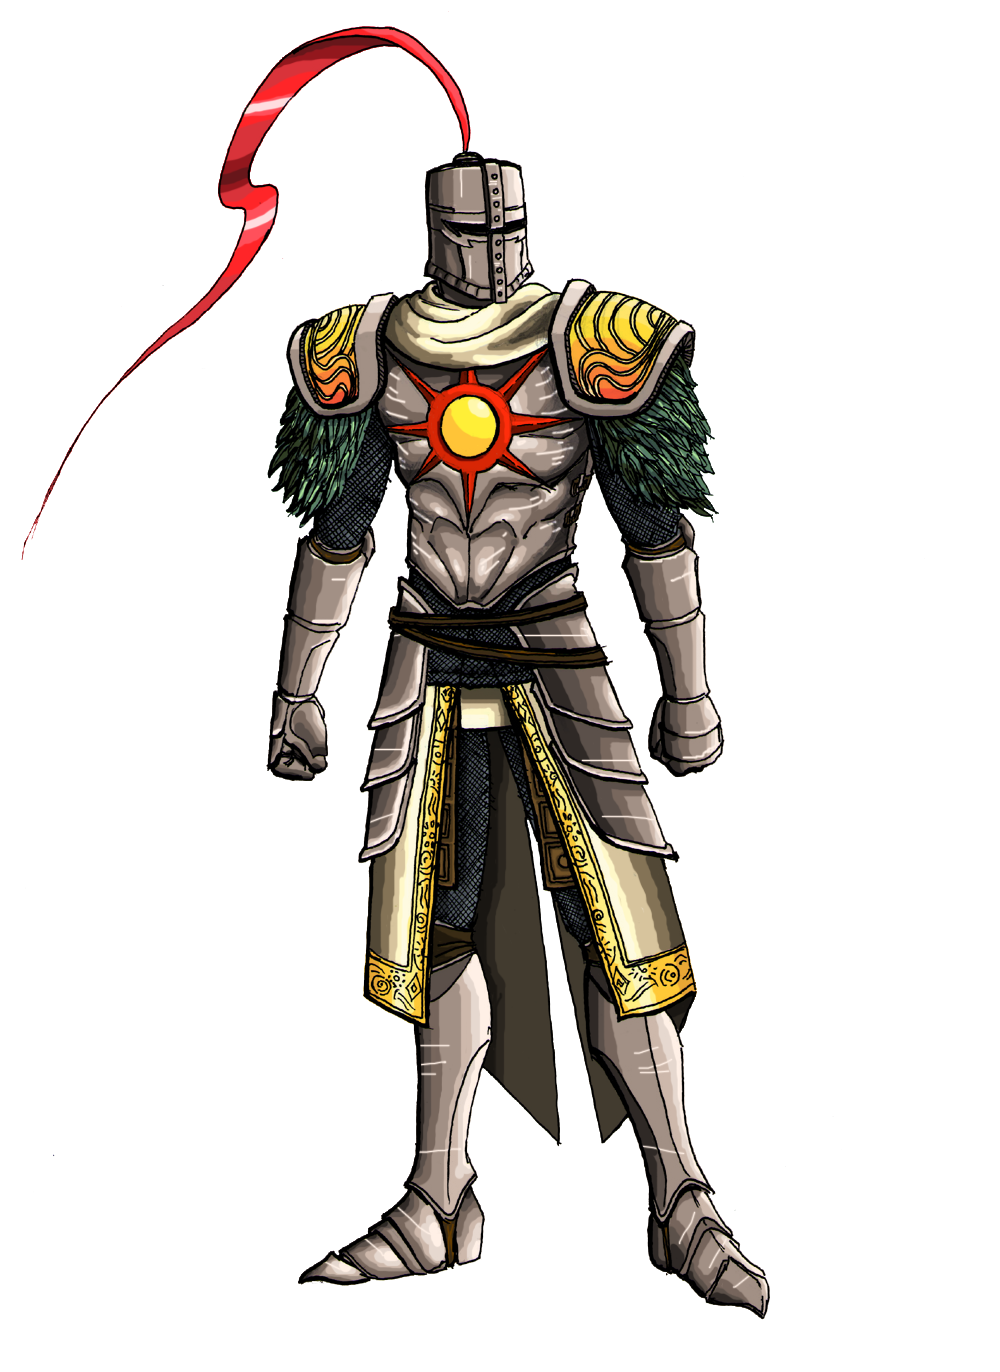 Solaire (color) by MenasLG on DeviantArt